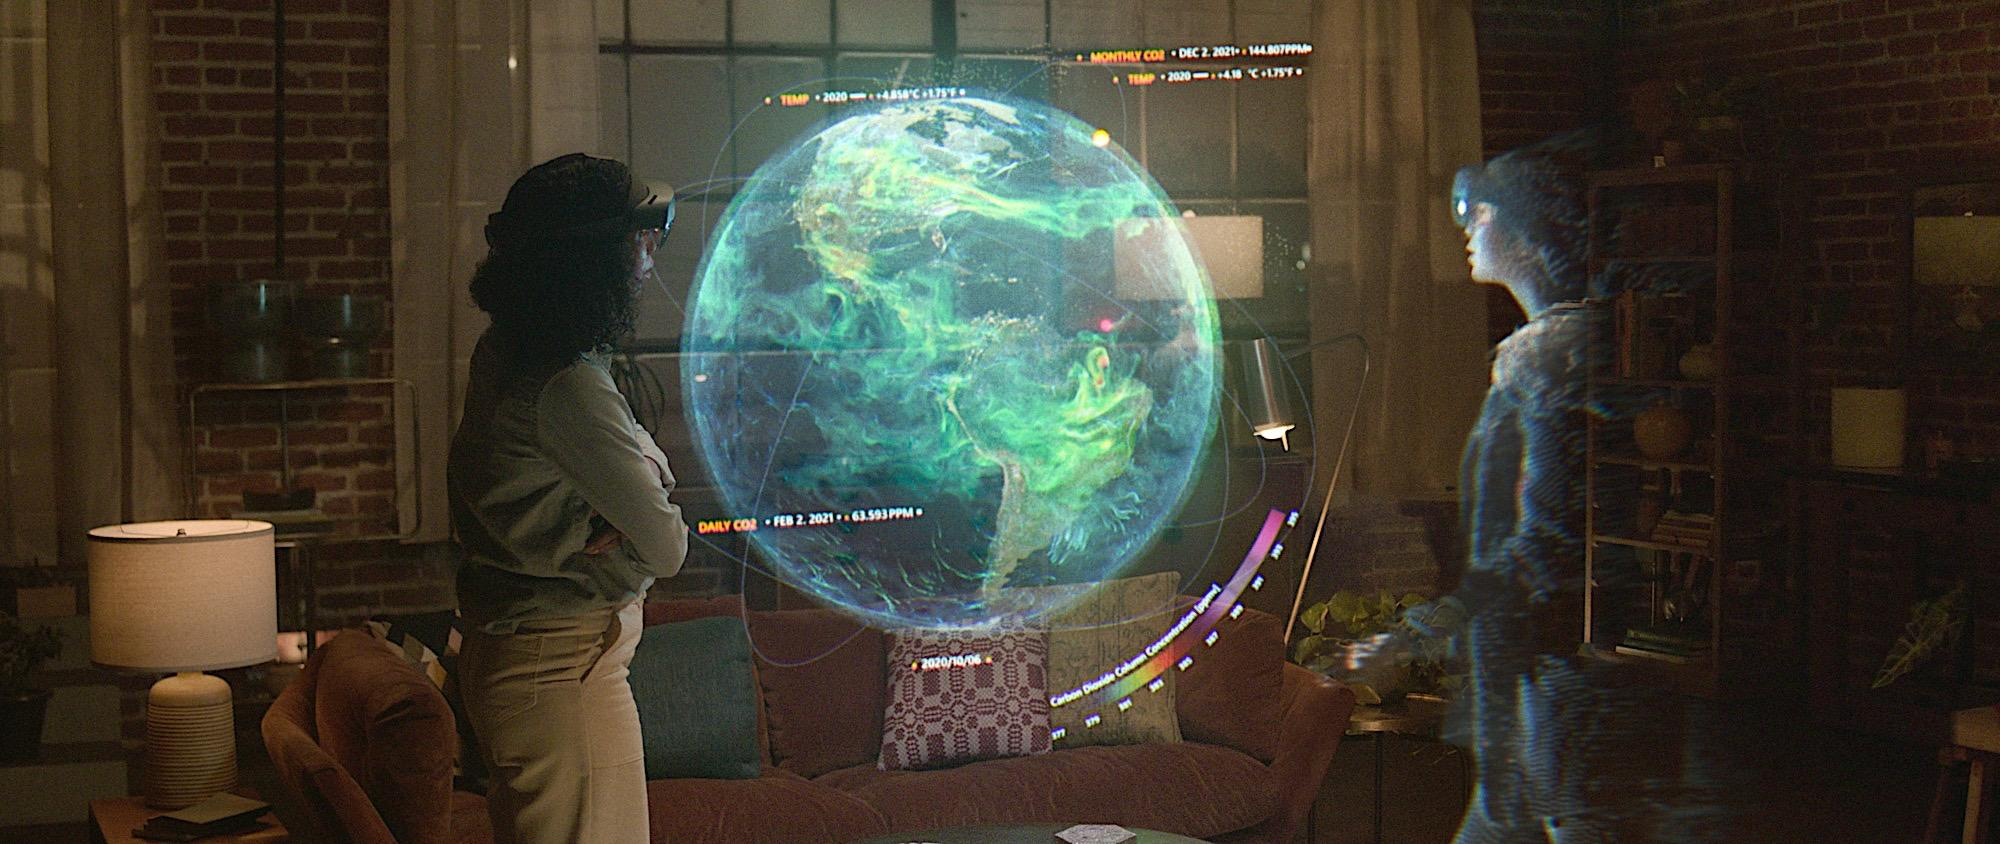 Picture representing the future of office meetings using holograms